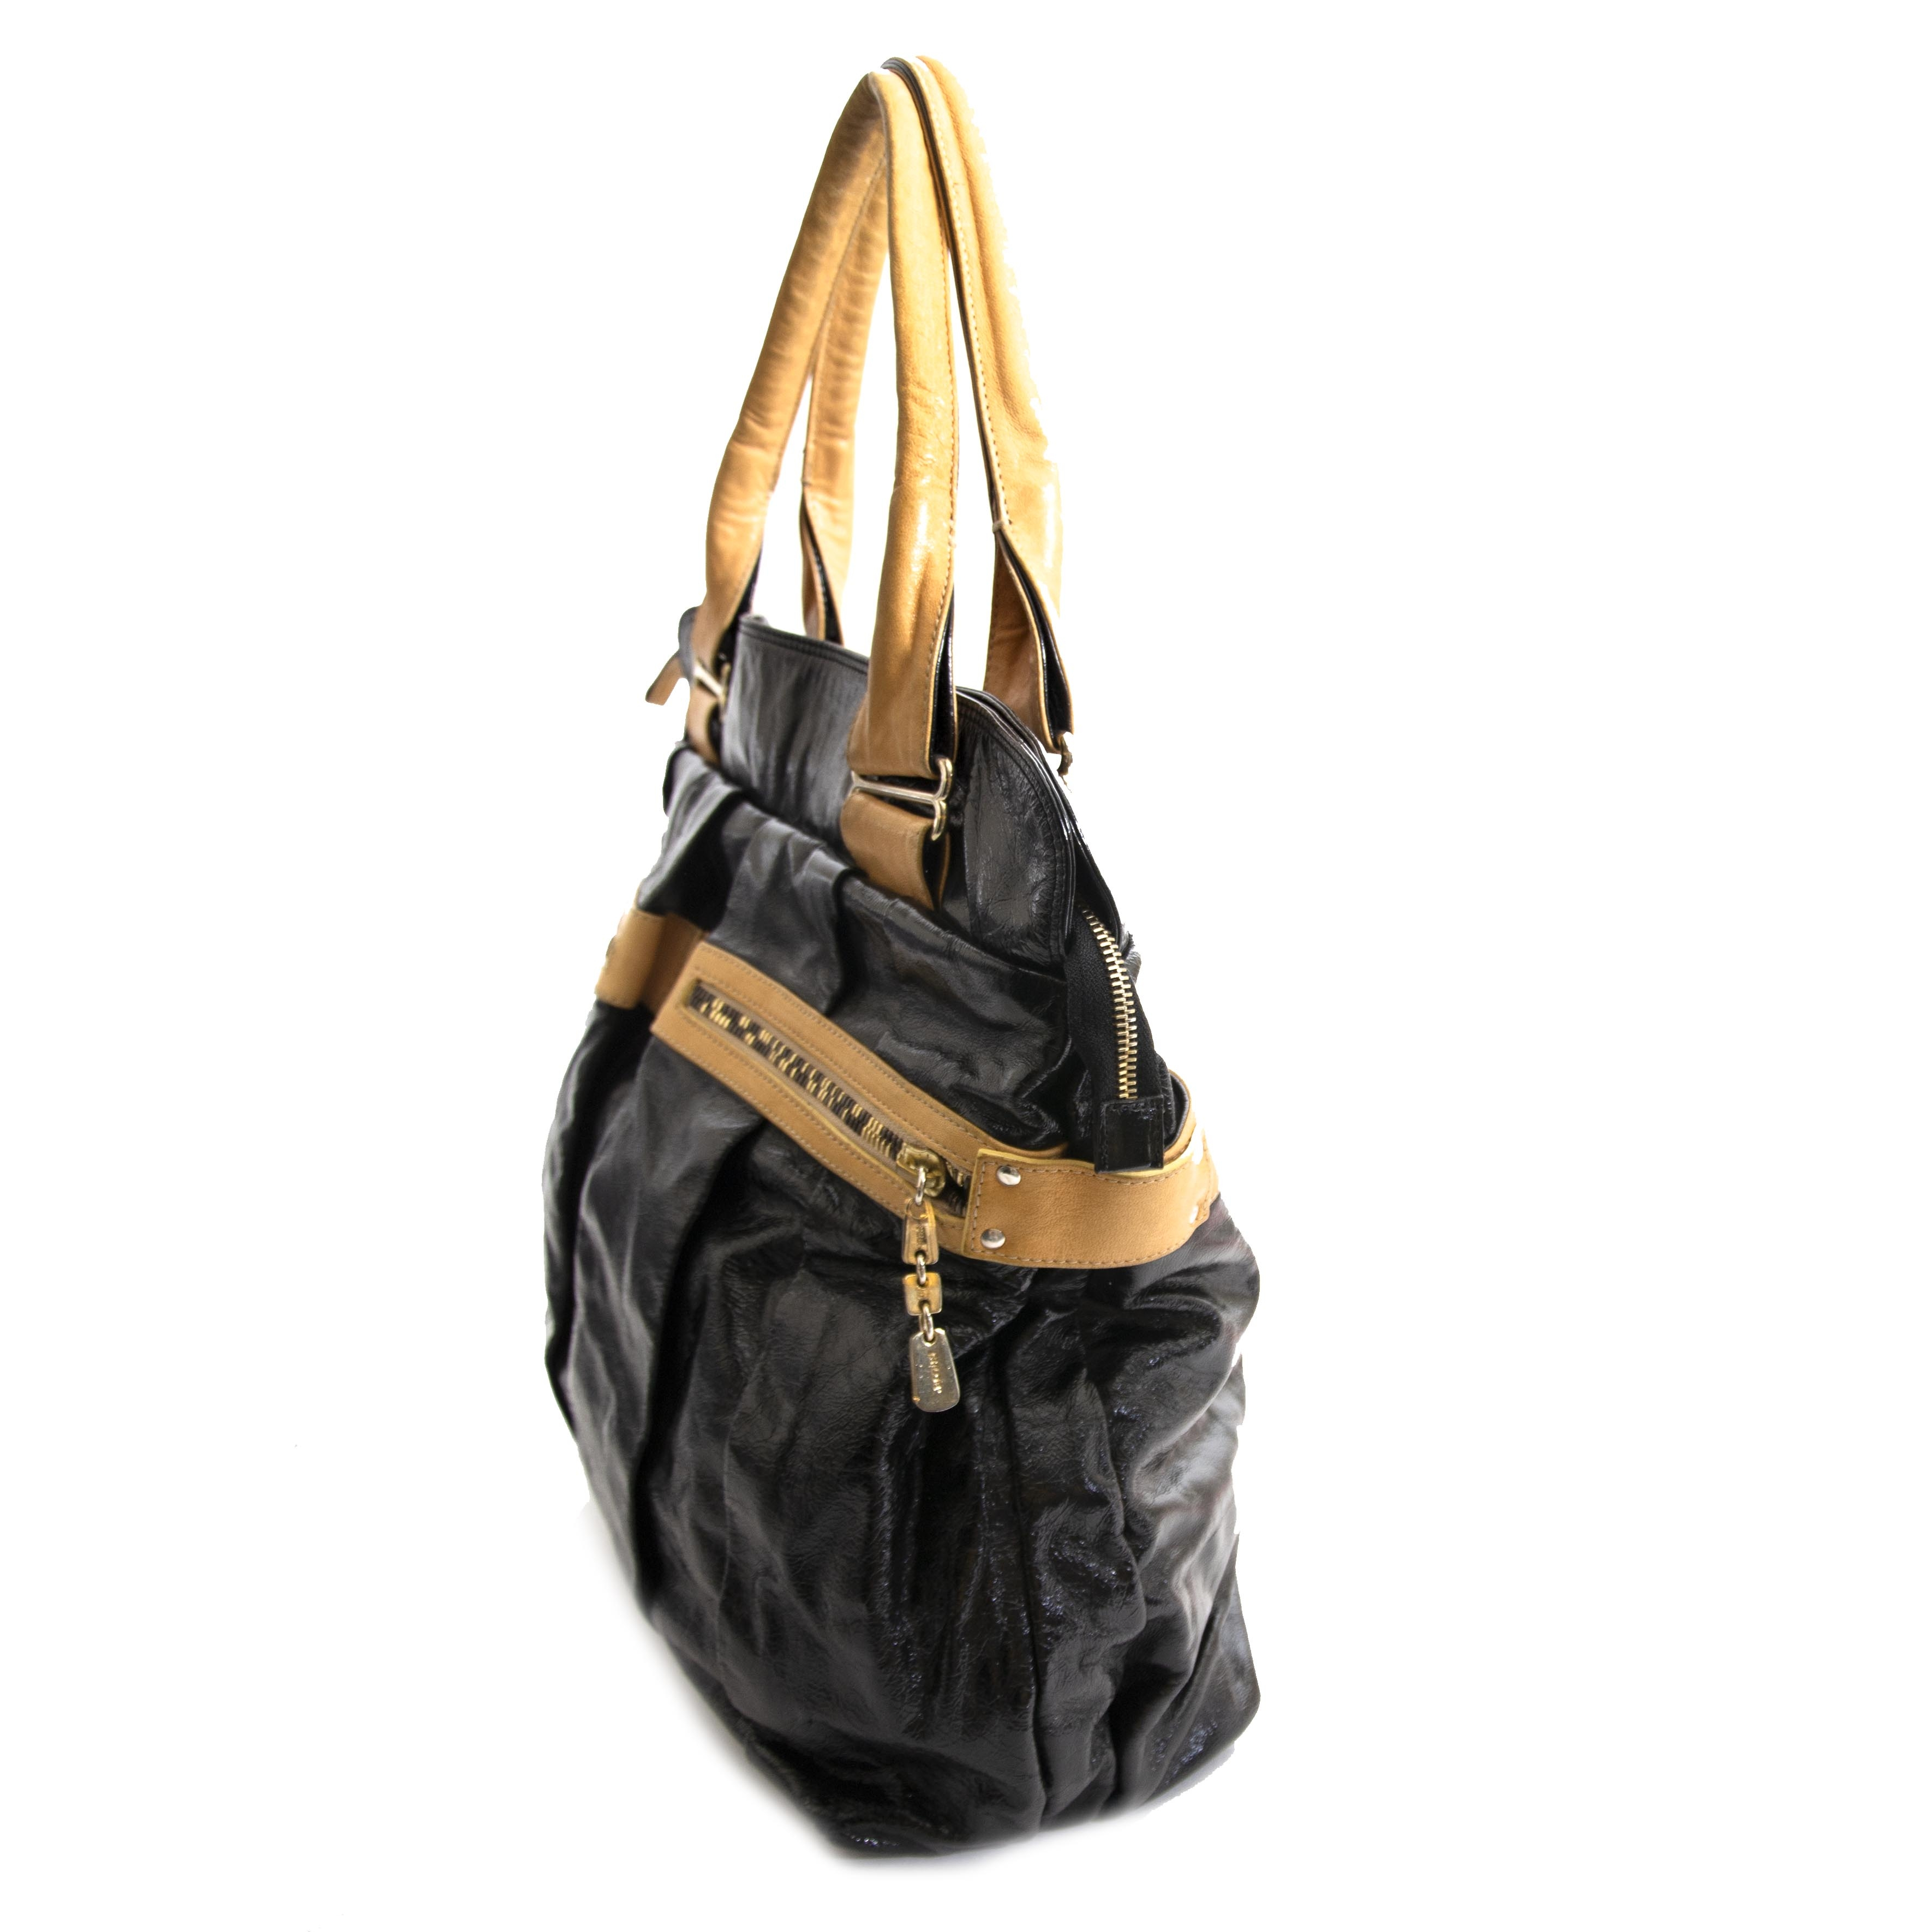 Secondhand See By Chloé black tote bag at Labellov Antwerp. Safe online shopping